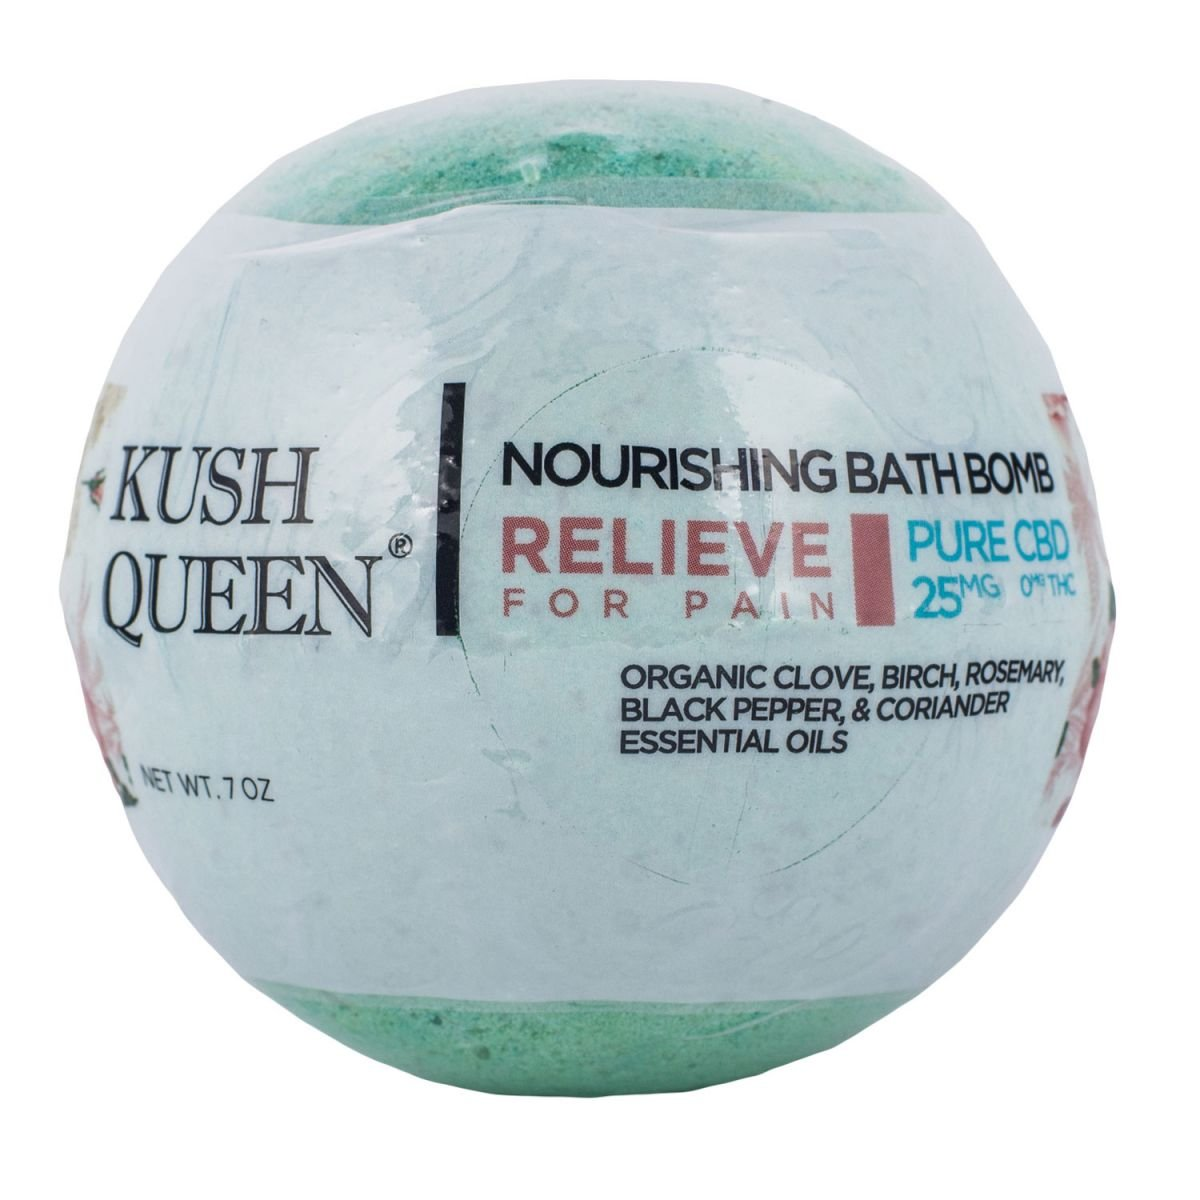 Kush Queen CBD Bath Bomb